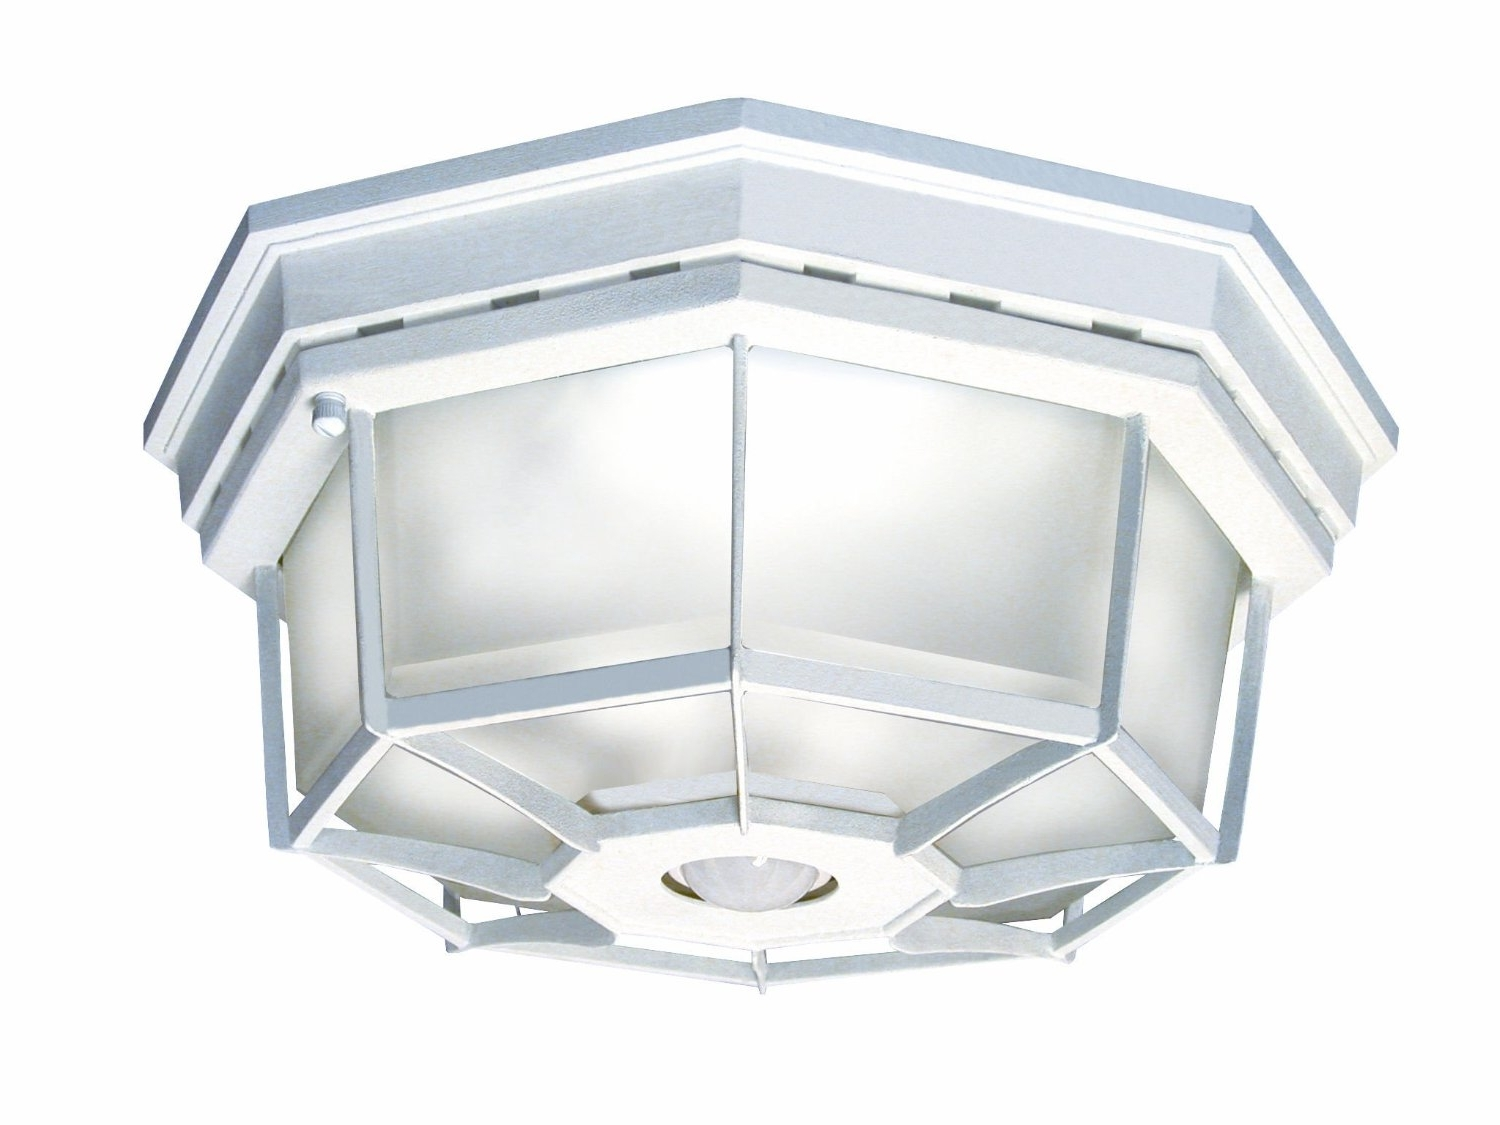 Famous Outdoor Ceiling Light Motion Sensor (Gallery 2 of 20)